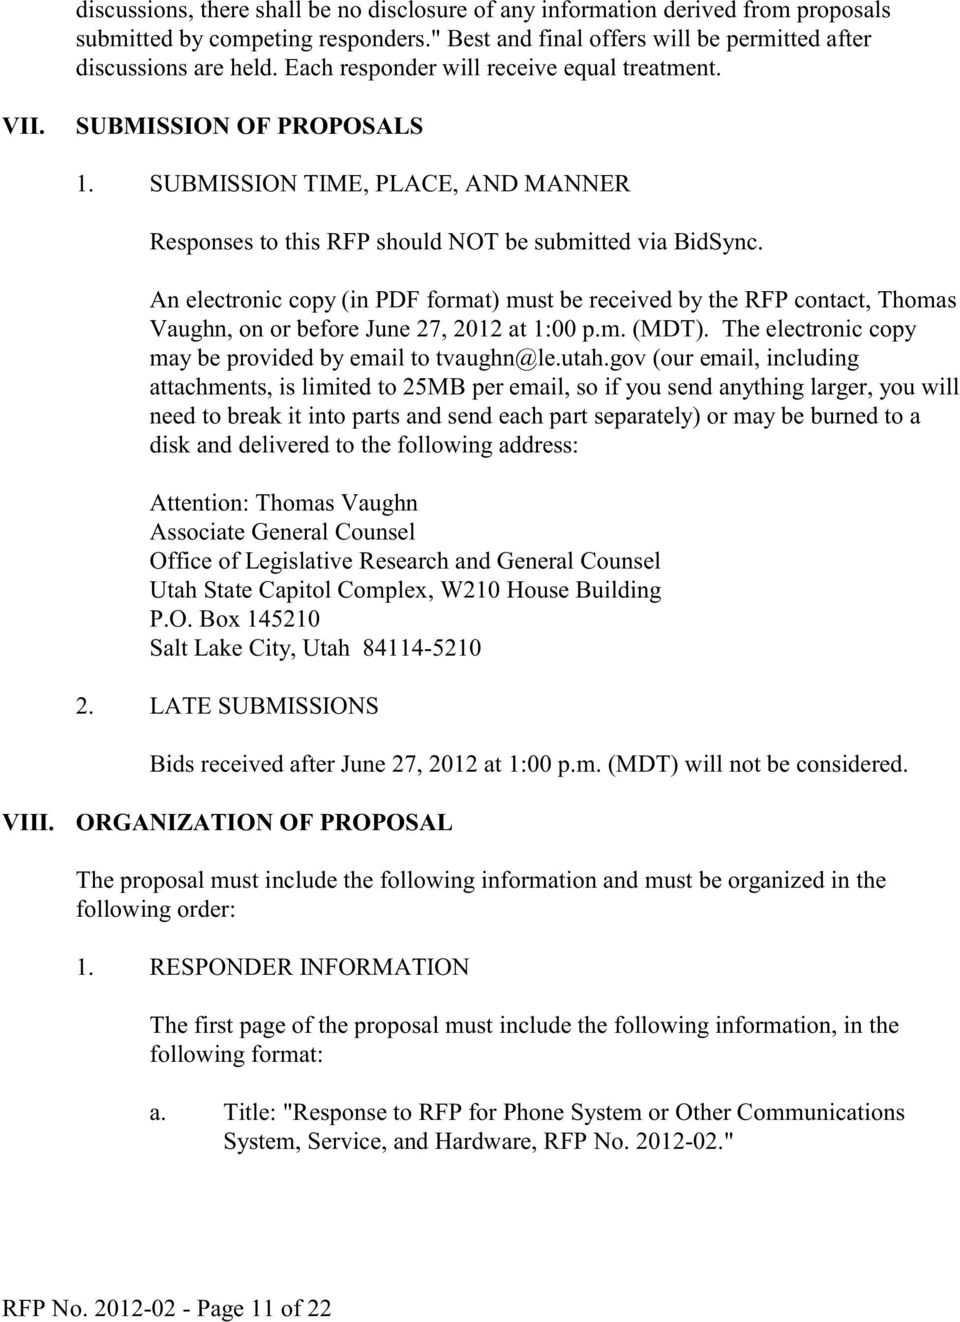 An electronic copy (in PDF format) must be received by the RFP contact, Thomas Vaughn, on or before June 27, 2012 at 1:00 p.m. (MDT). The electronic copy may be provided by email to tvaughn@le.utah.